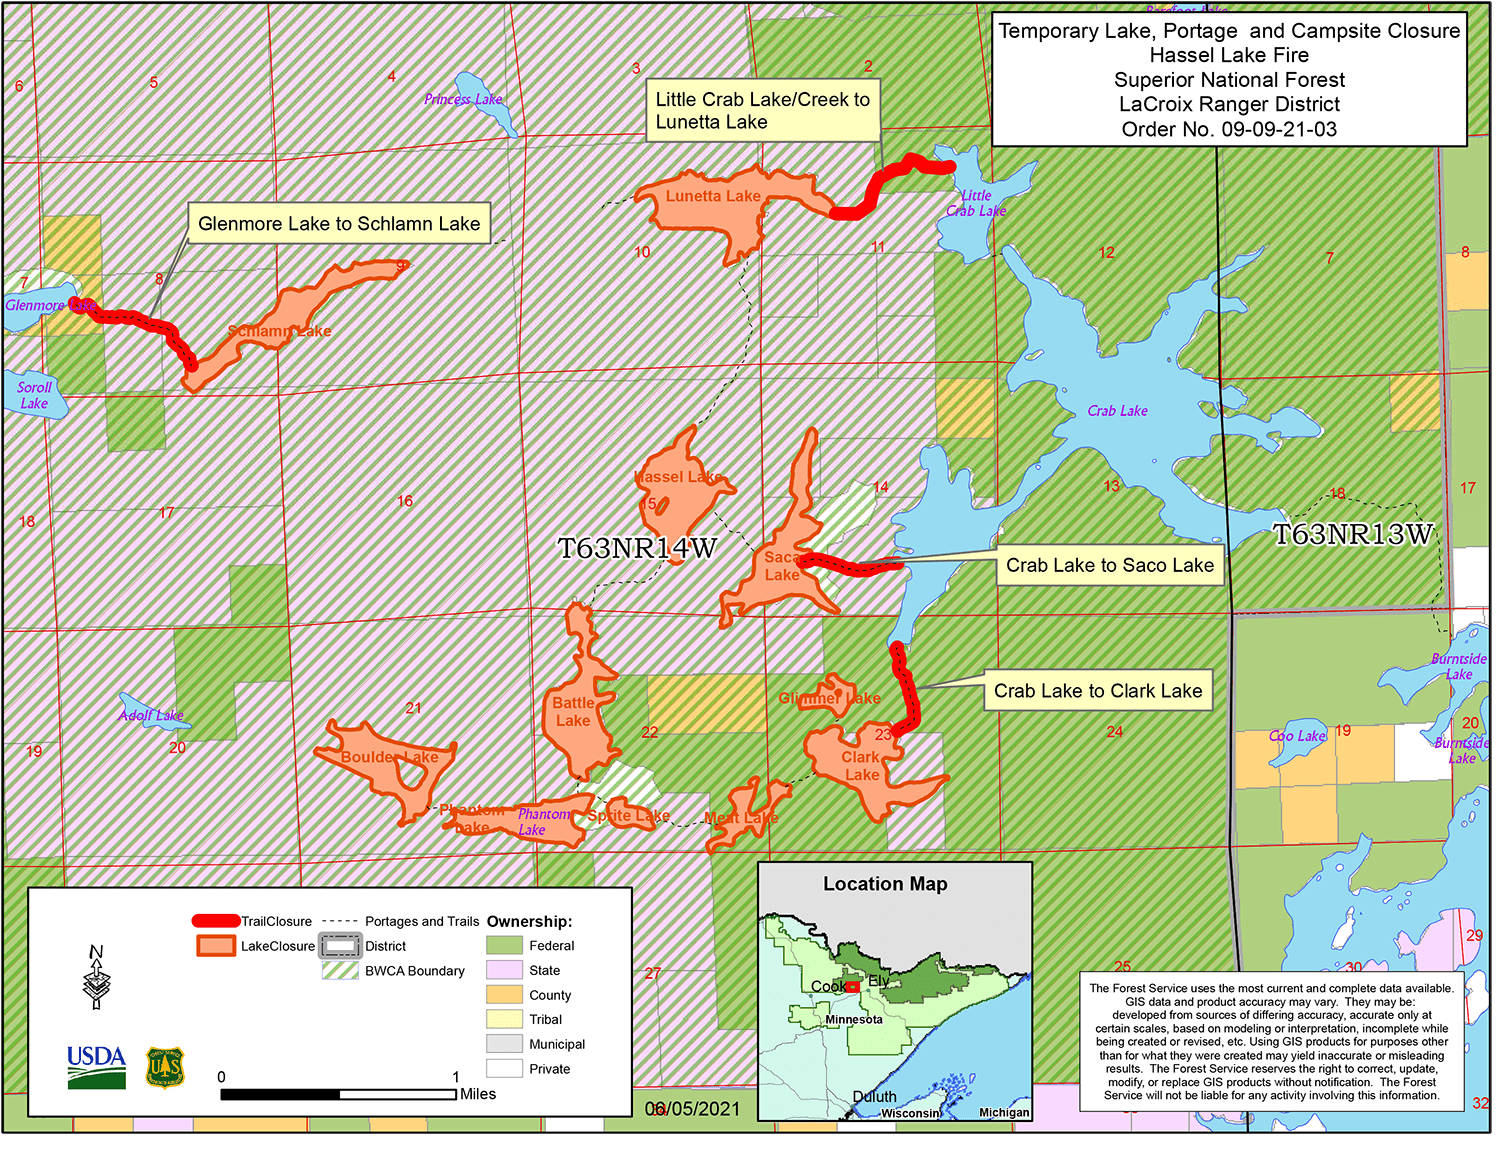 A map showing a wilderness area.